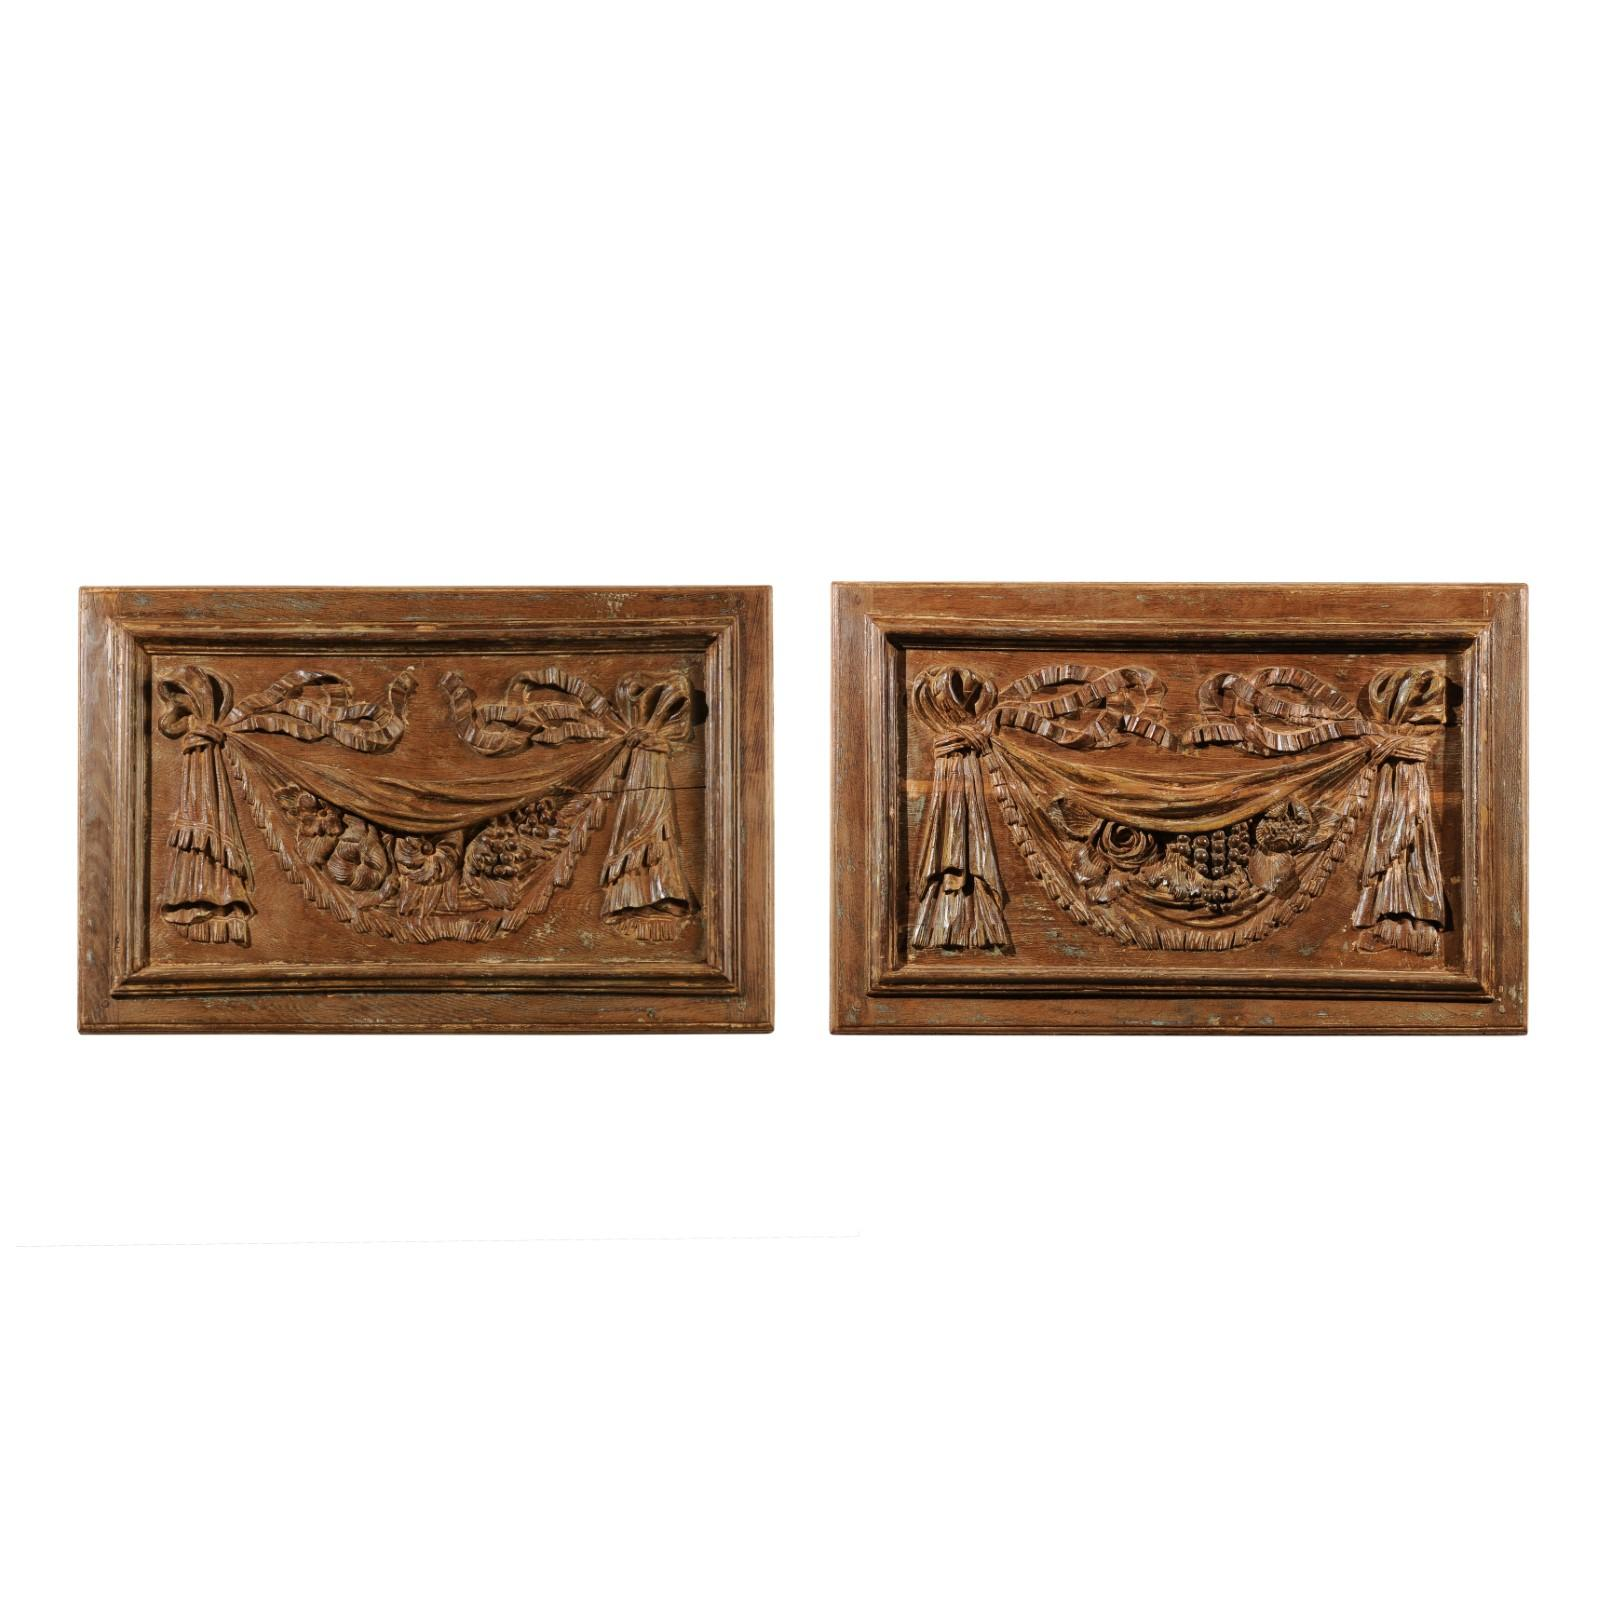 Pair of 18th Century Architectural Panels with Swags Hand Carved in Low-Relief